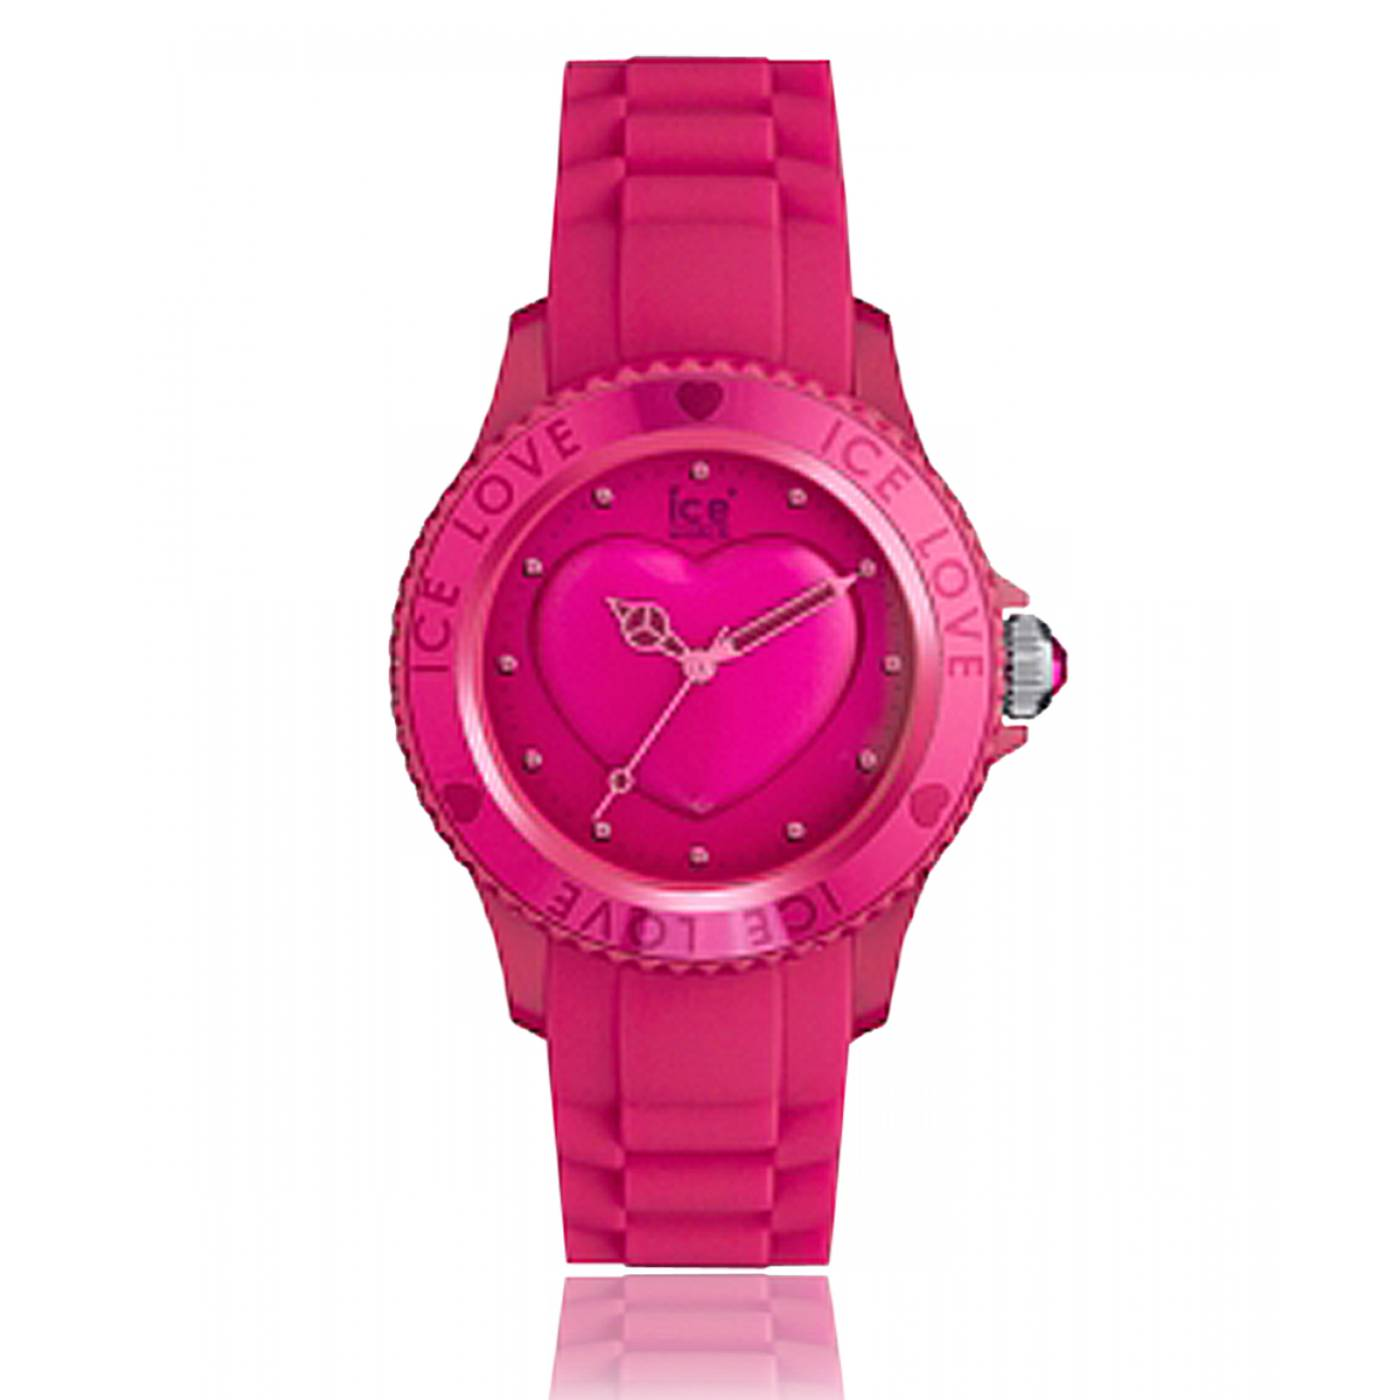 montre coeur femme love silicone rose ice watch. Black Bedroom Furniture Sets. Home Design Ideas